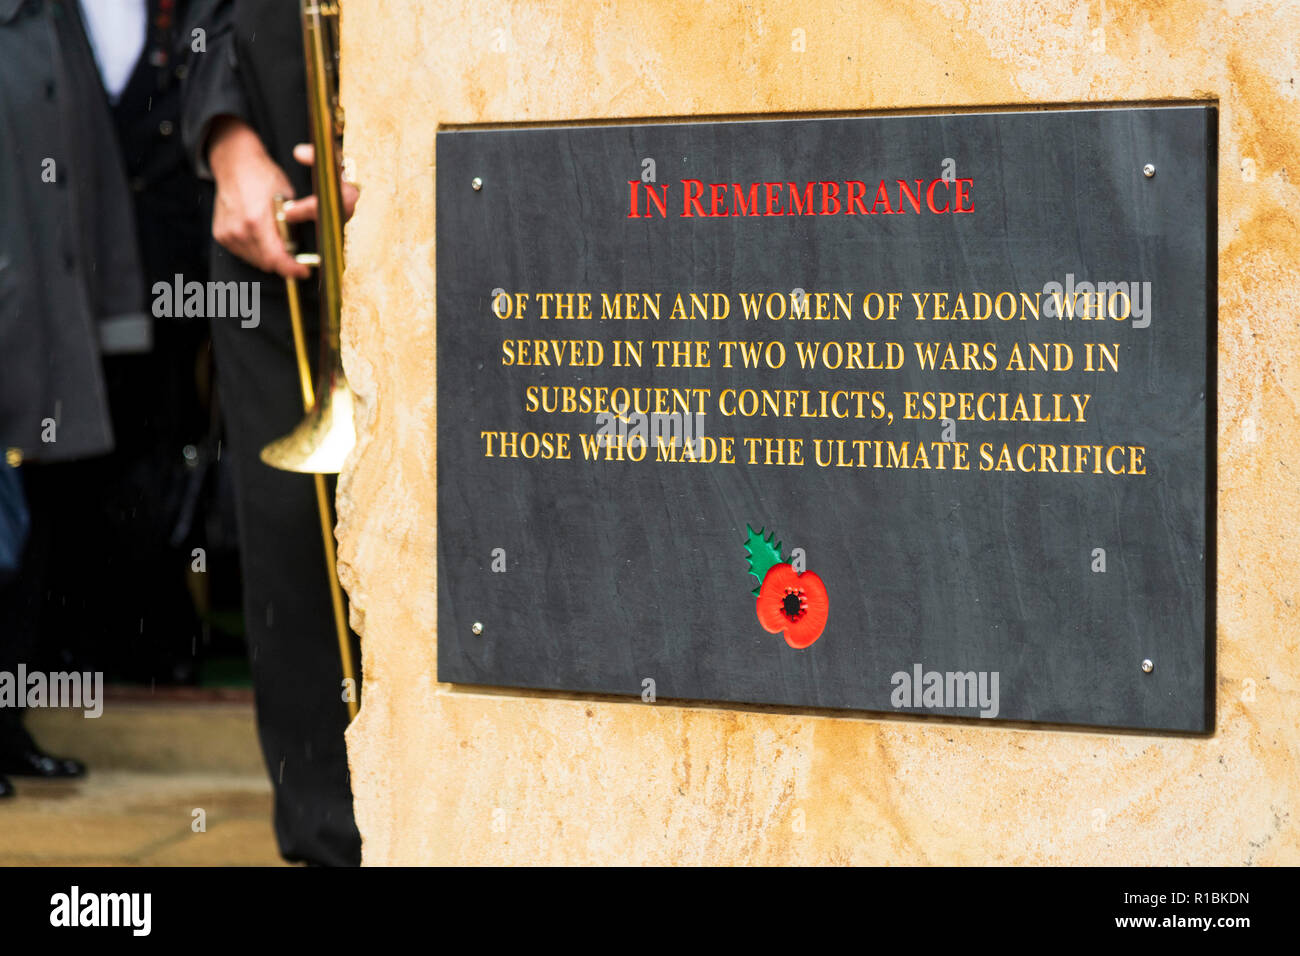 Yeadon, Leeds, West Yorkshire, UK 11th November, 2018. Close-up of the plaque inscription & red poppy motif on the new war memorial stone in front of Yeadon Methodist Church, on the anniversary of the end of the First World War. Ian Lamond/Alamy Live News Stock Photo